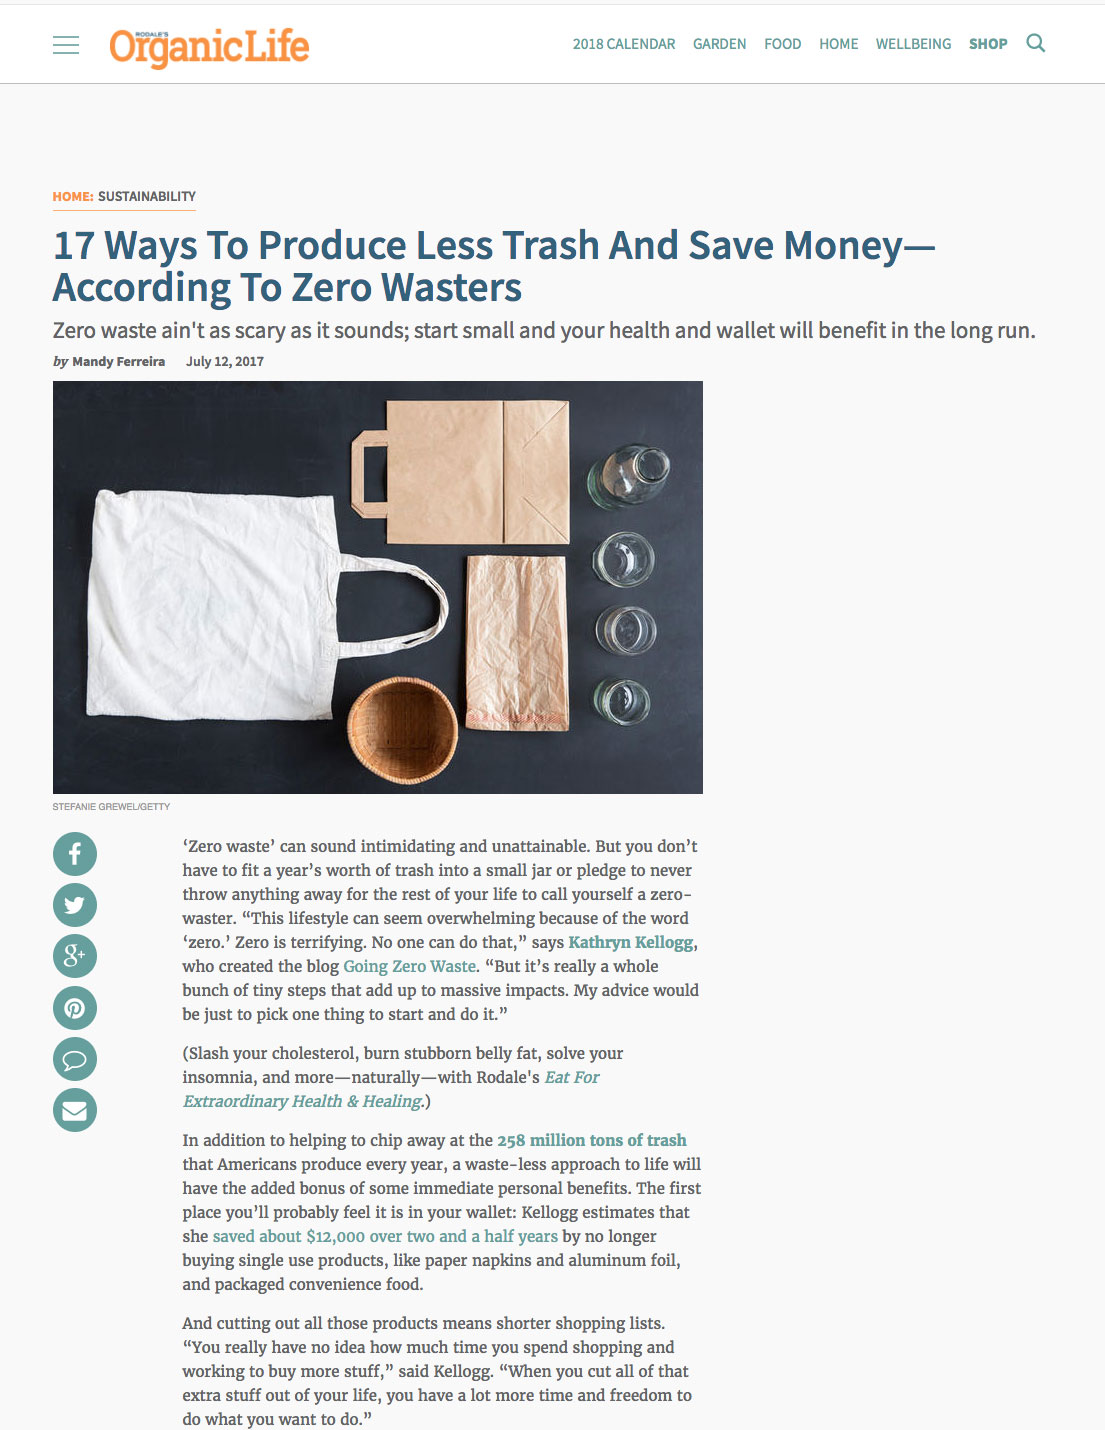 17 Ways To Produce Less Trash And Save Money—According To Zero Wasters by Mandy Ferreira Rodale's Organic Life